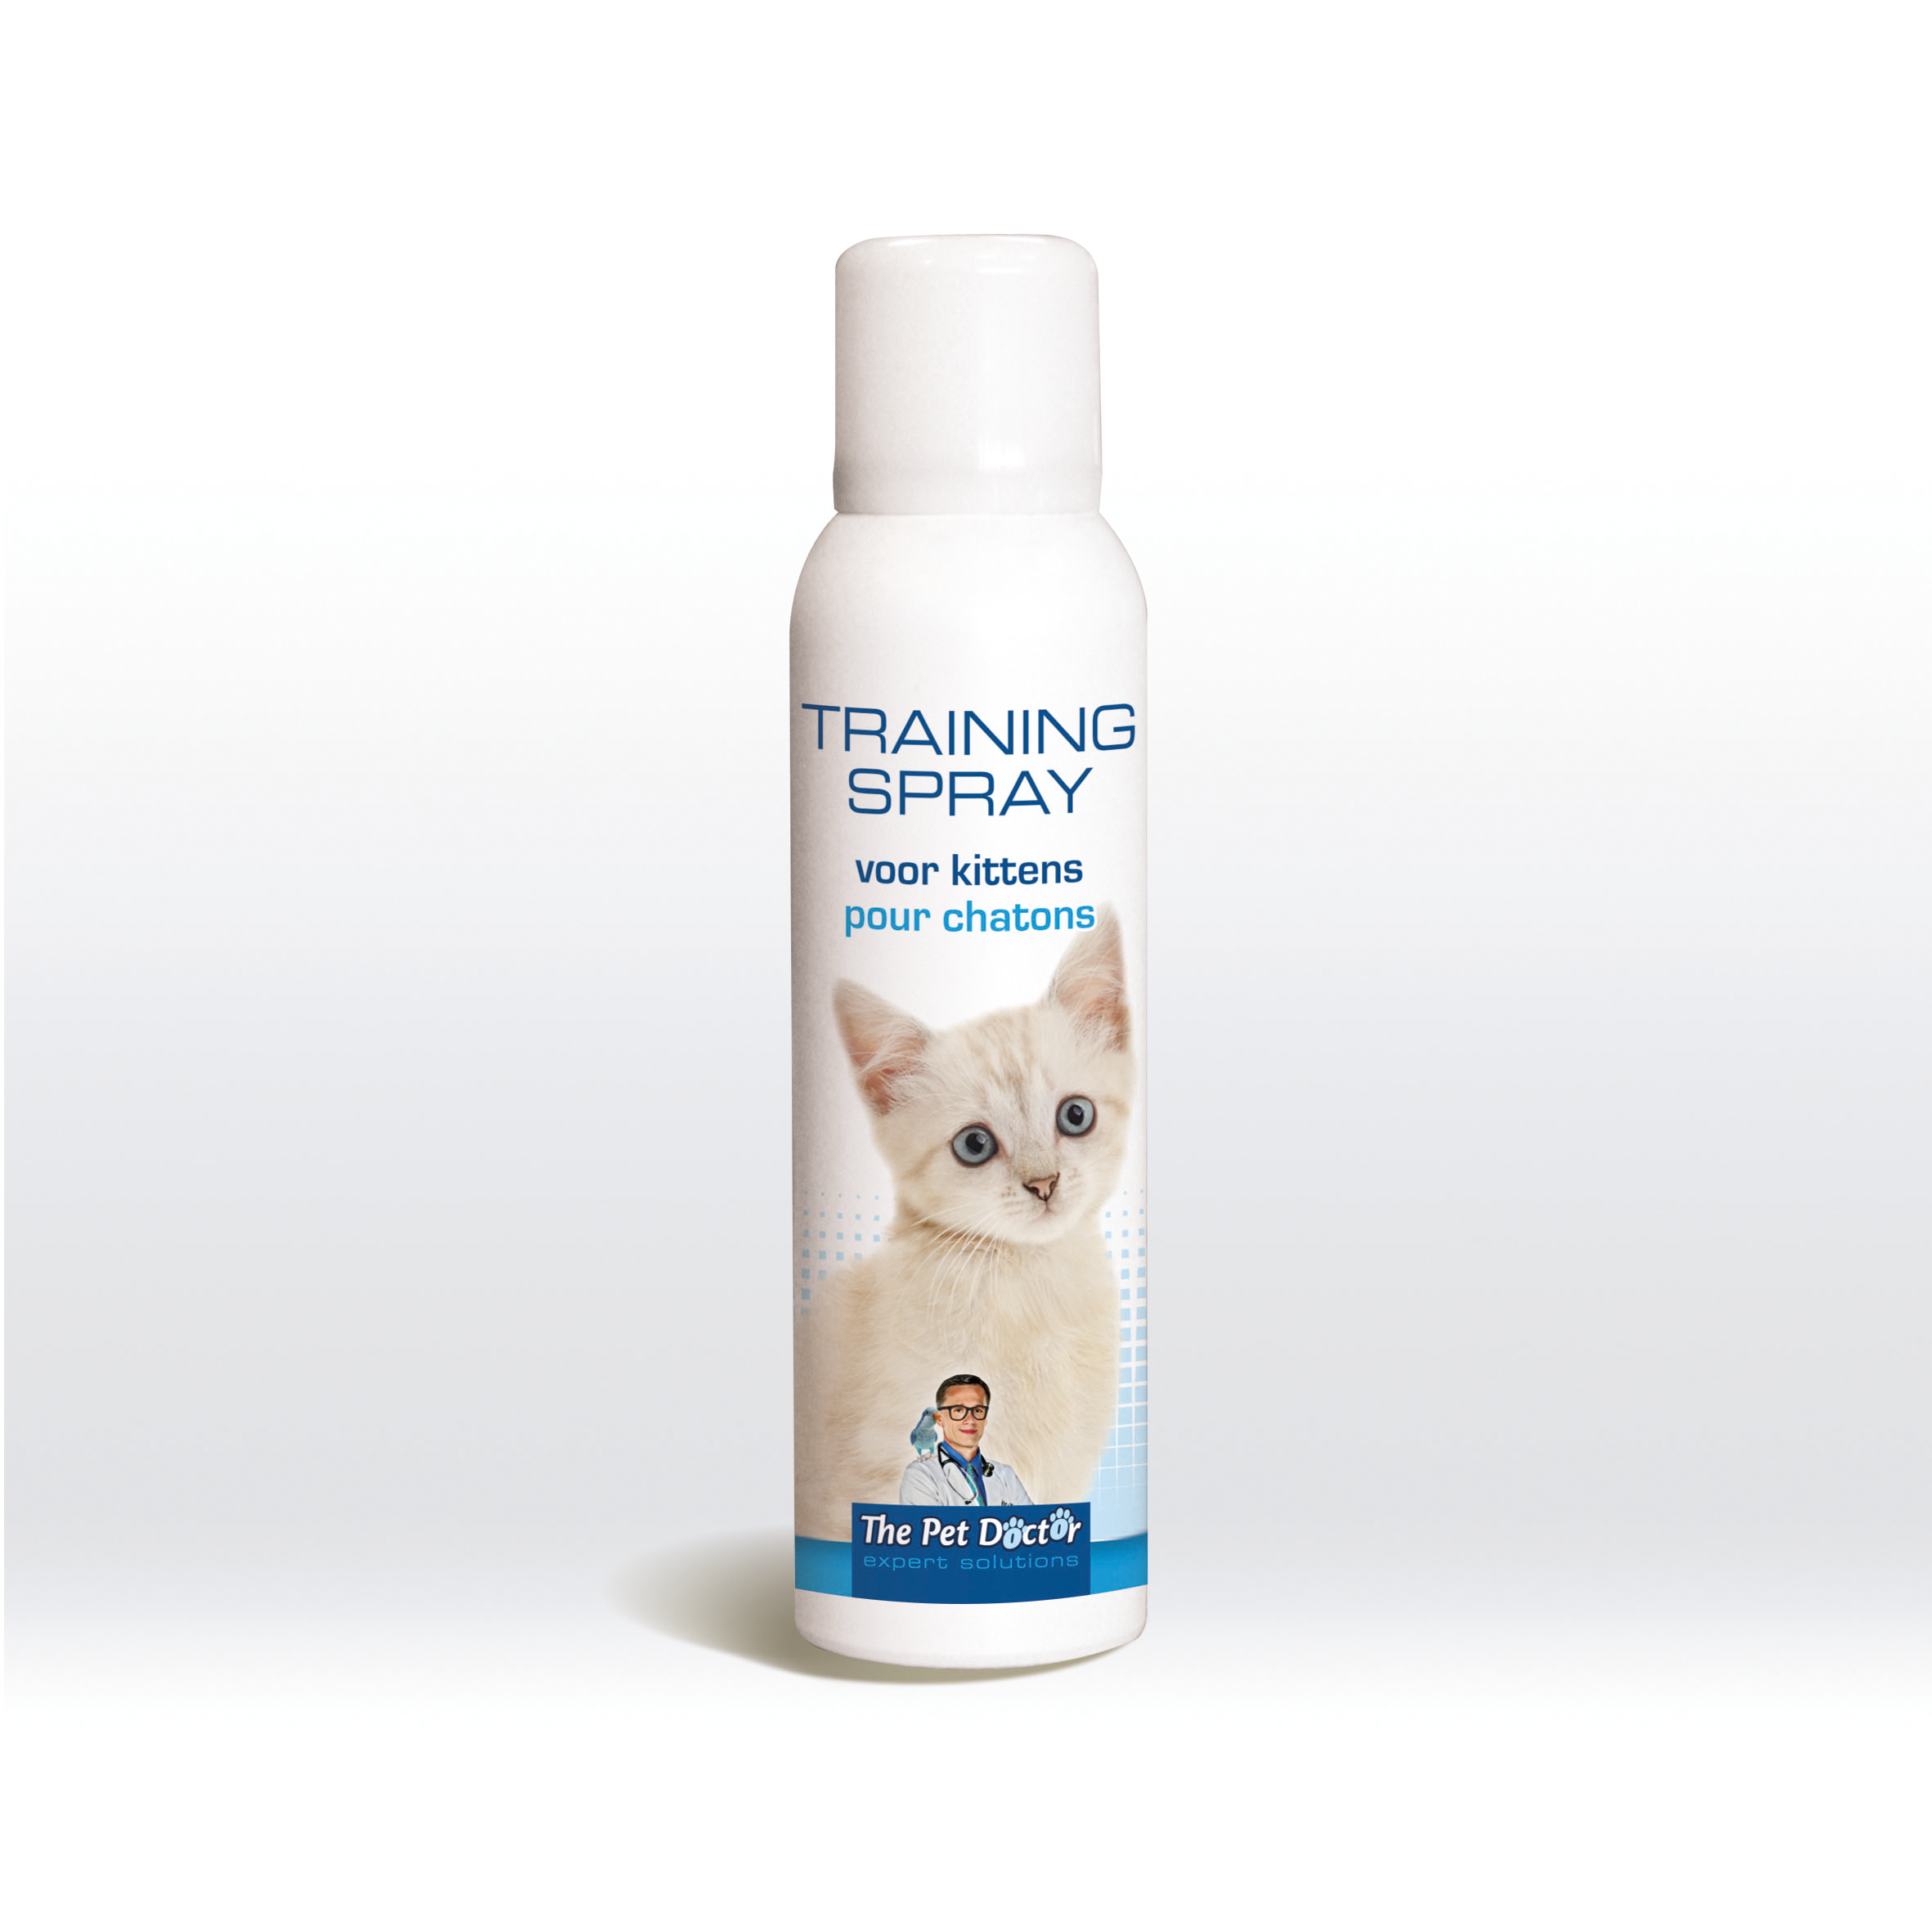 The Pet Doctor Training Spray Chatons 120 ml image